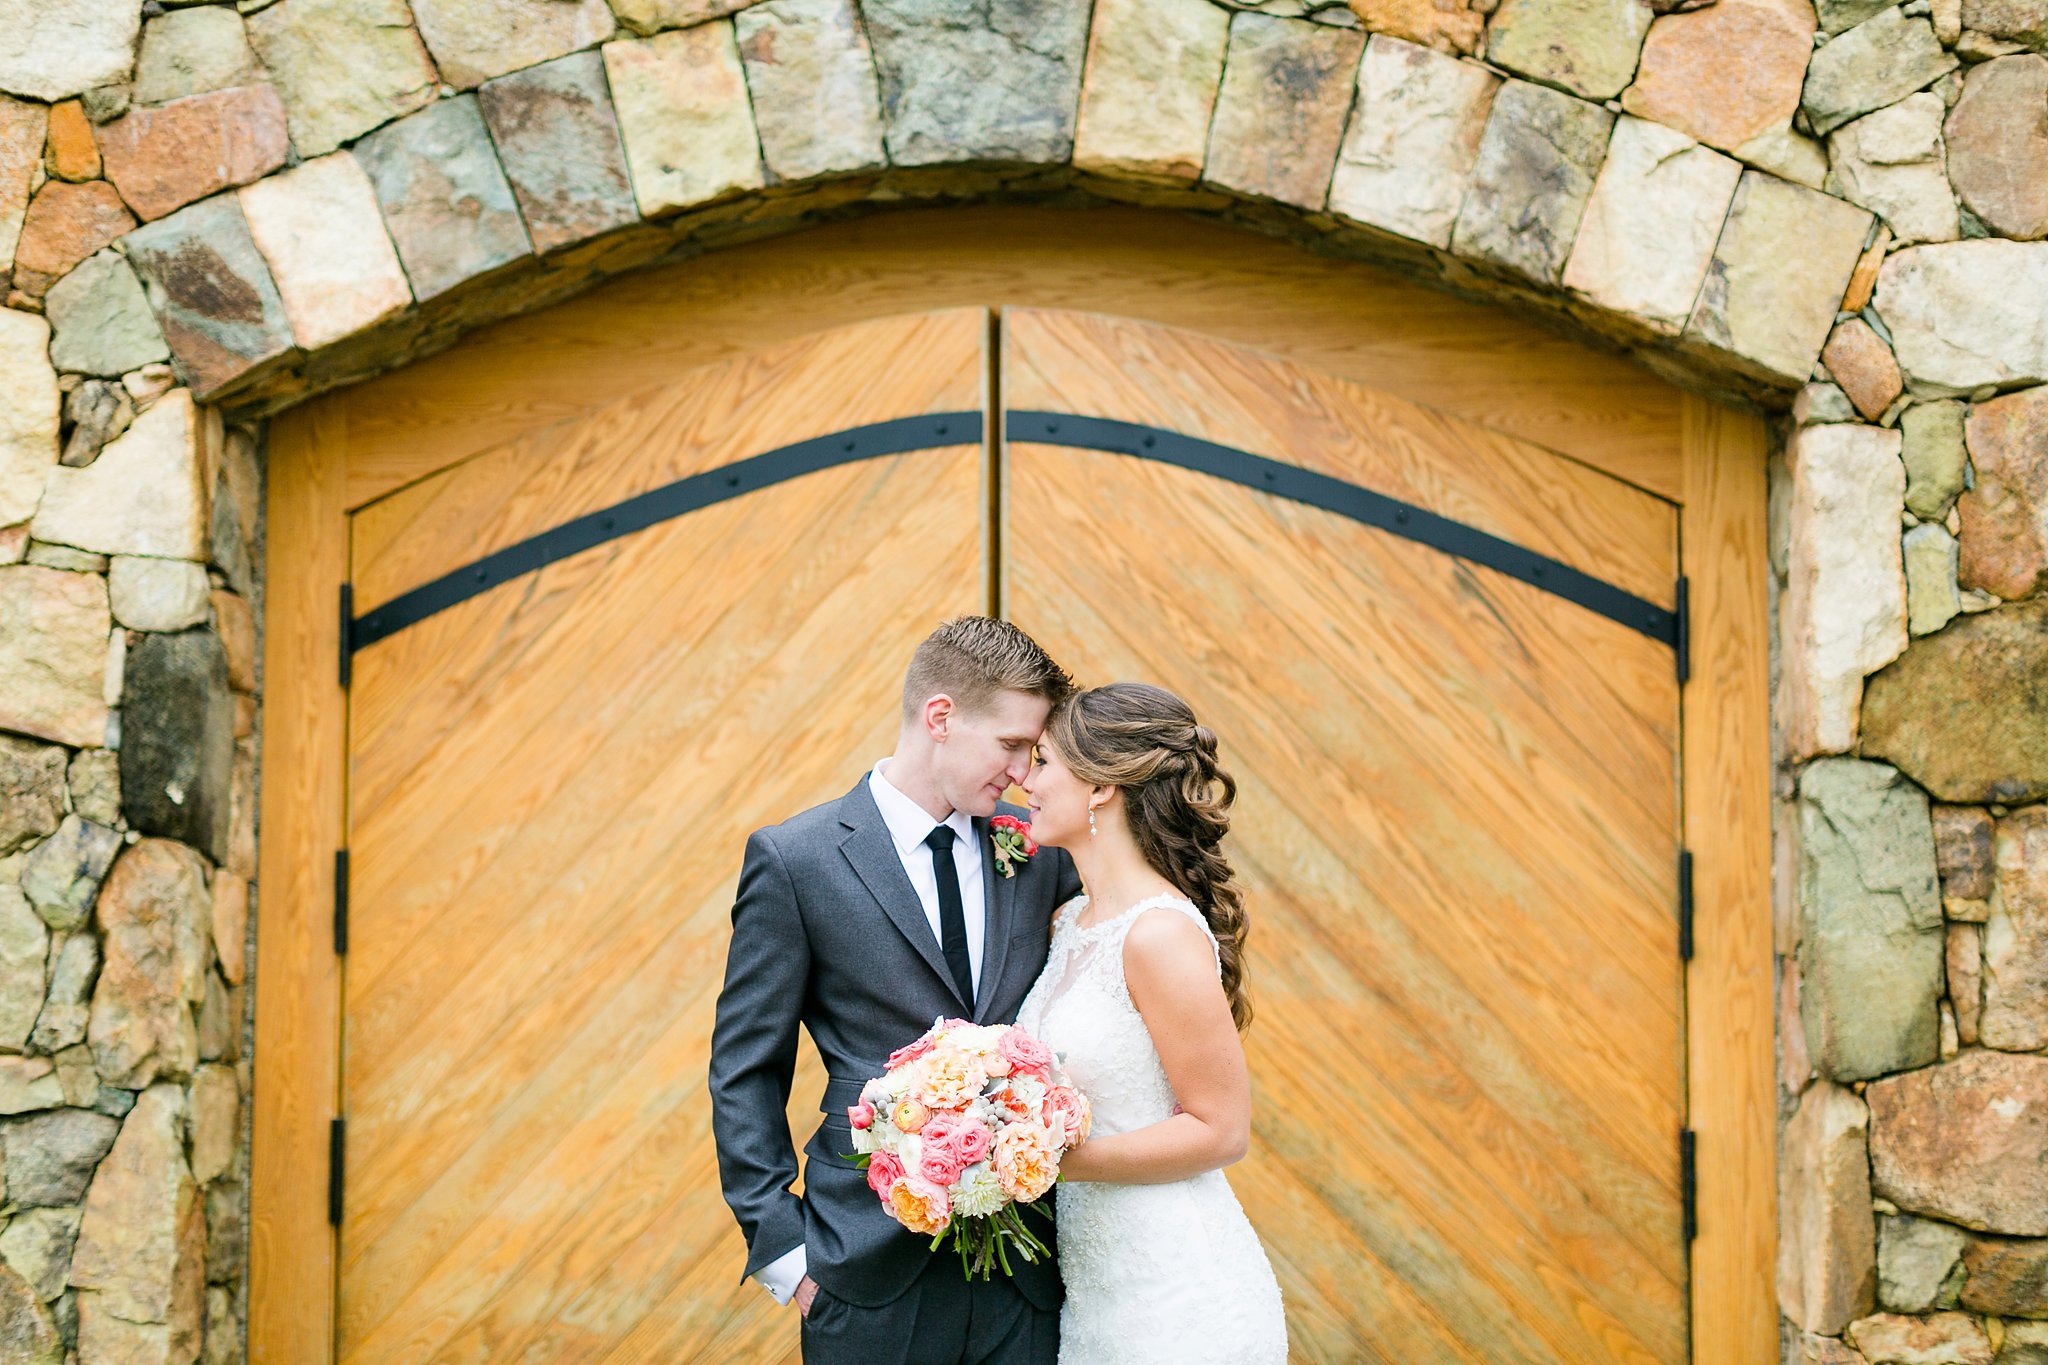 Stone Tower Winery Wedding Photos Virginia Wedding Photographer Megan Kelsey Photography Sam & Angela-250.jpg